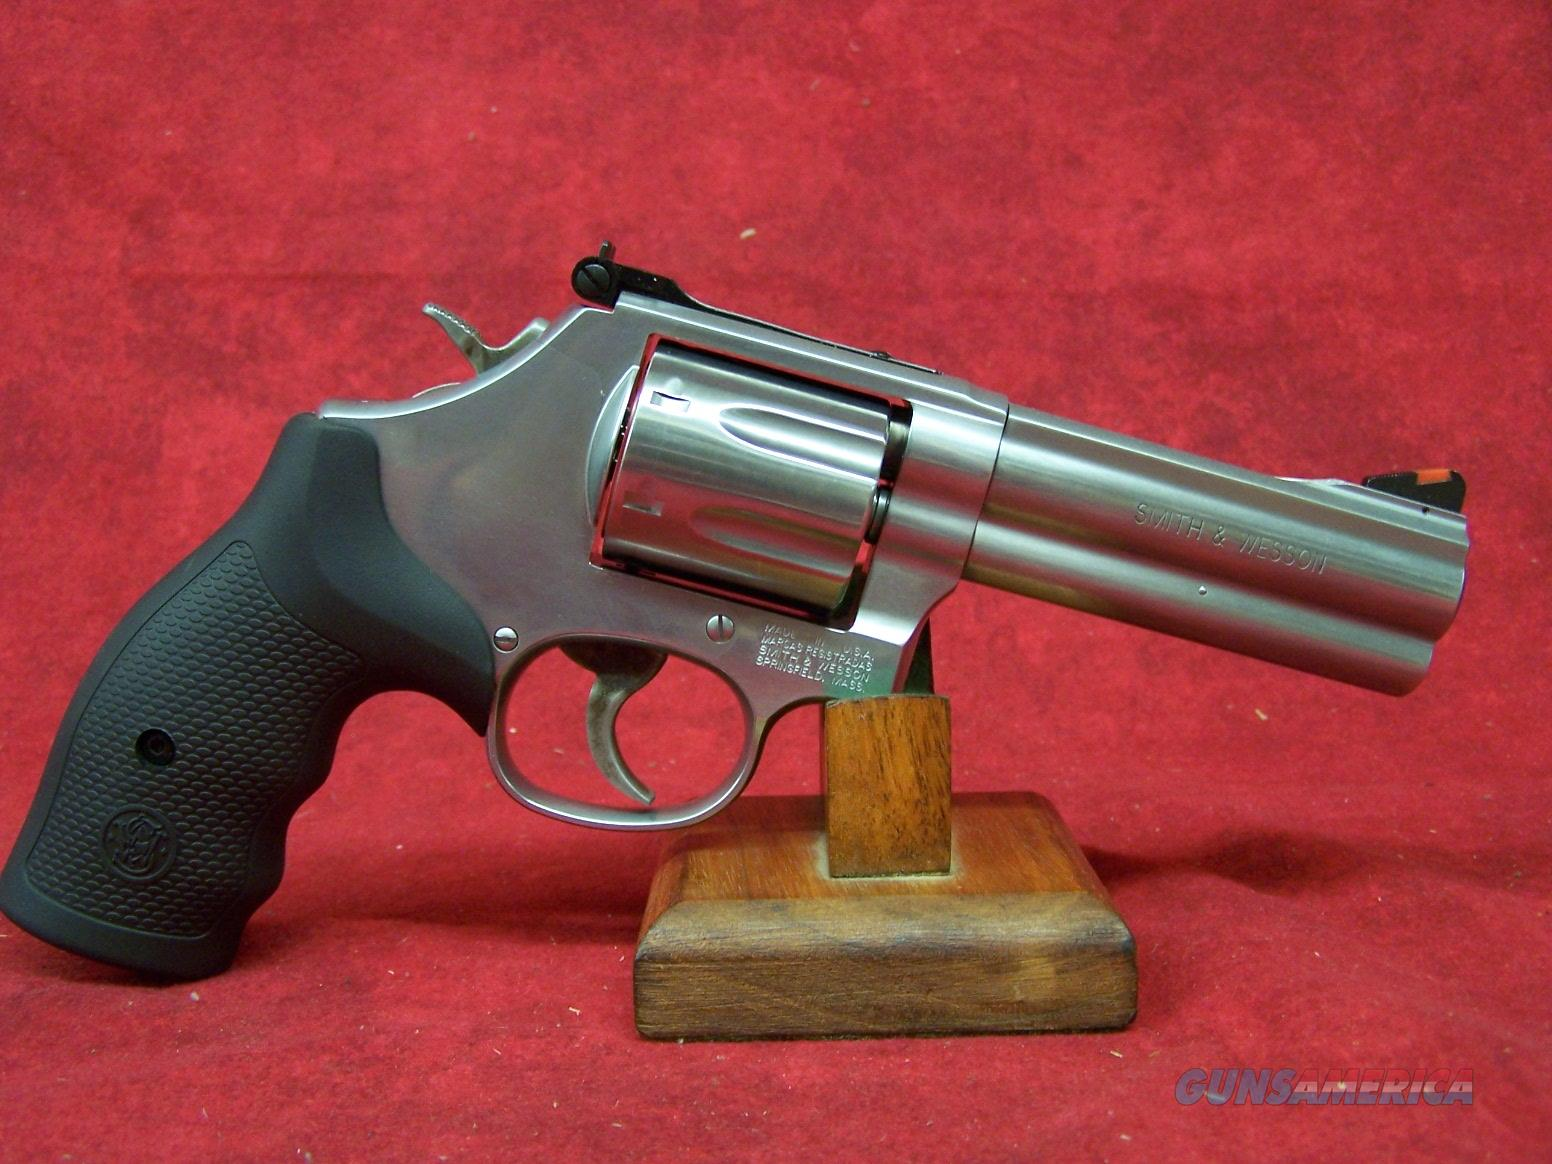 Smith & Wesson 686 Plus .357 Magnum/.38 Smith & Wesson Special +P 4 Inch Barrel (164194)  Guns > Pistols > Smith & Wesson Revolvers > Med. Frame ( K/L )